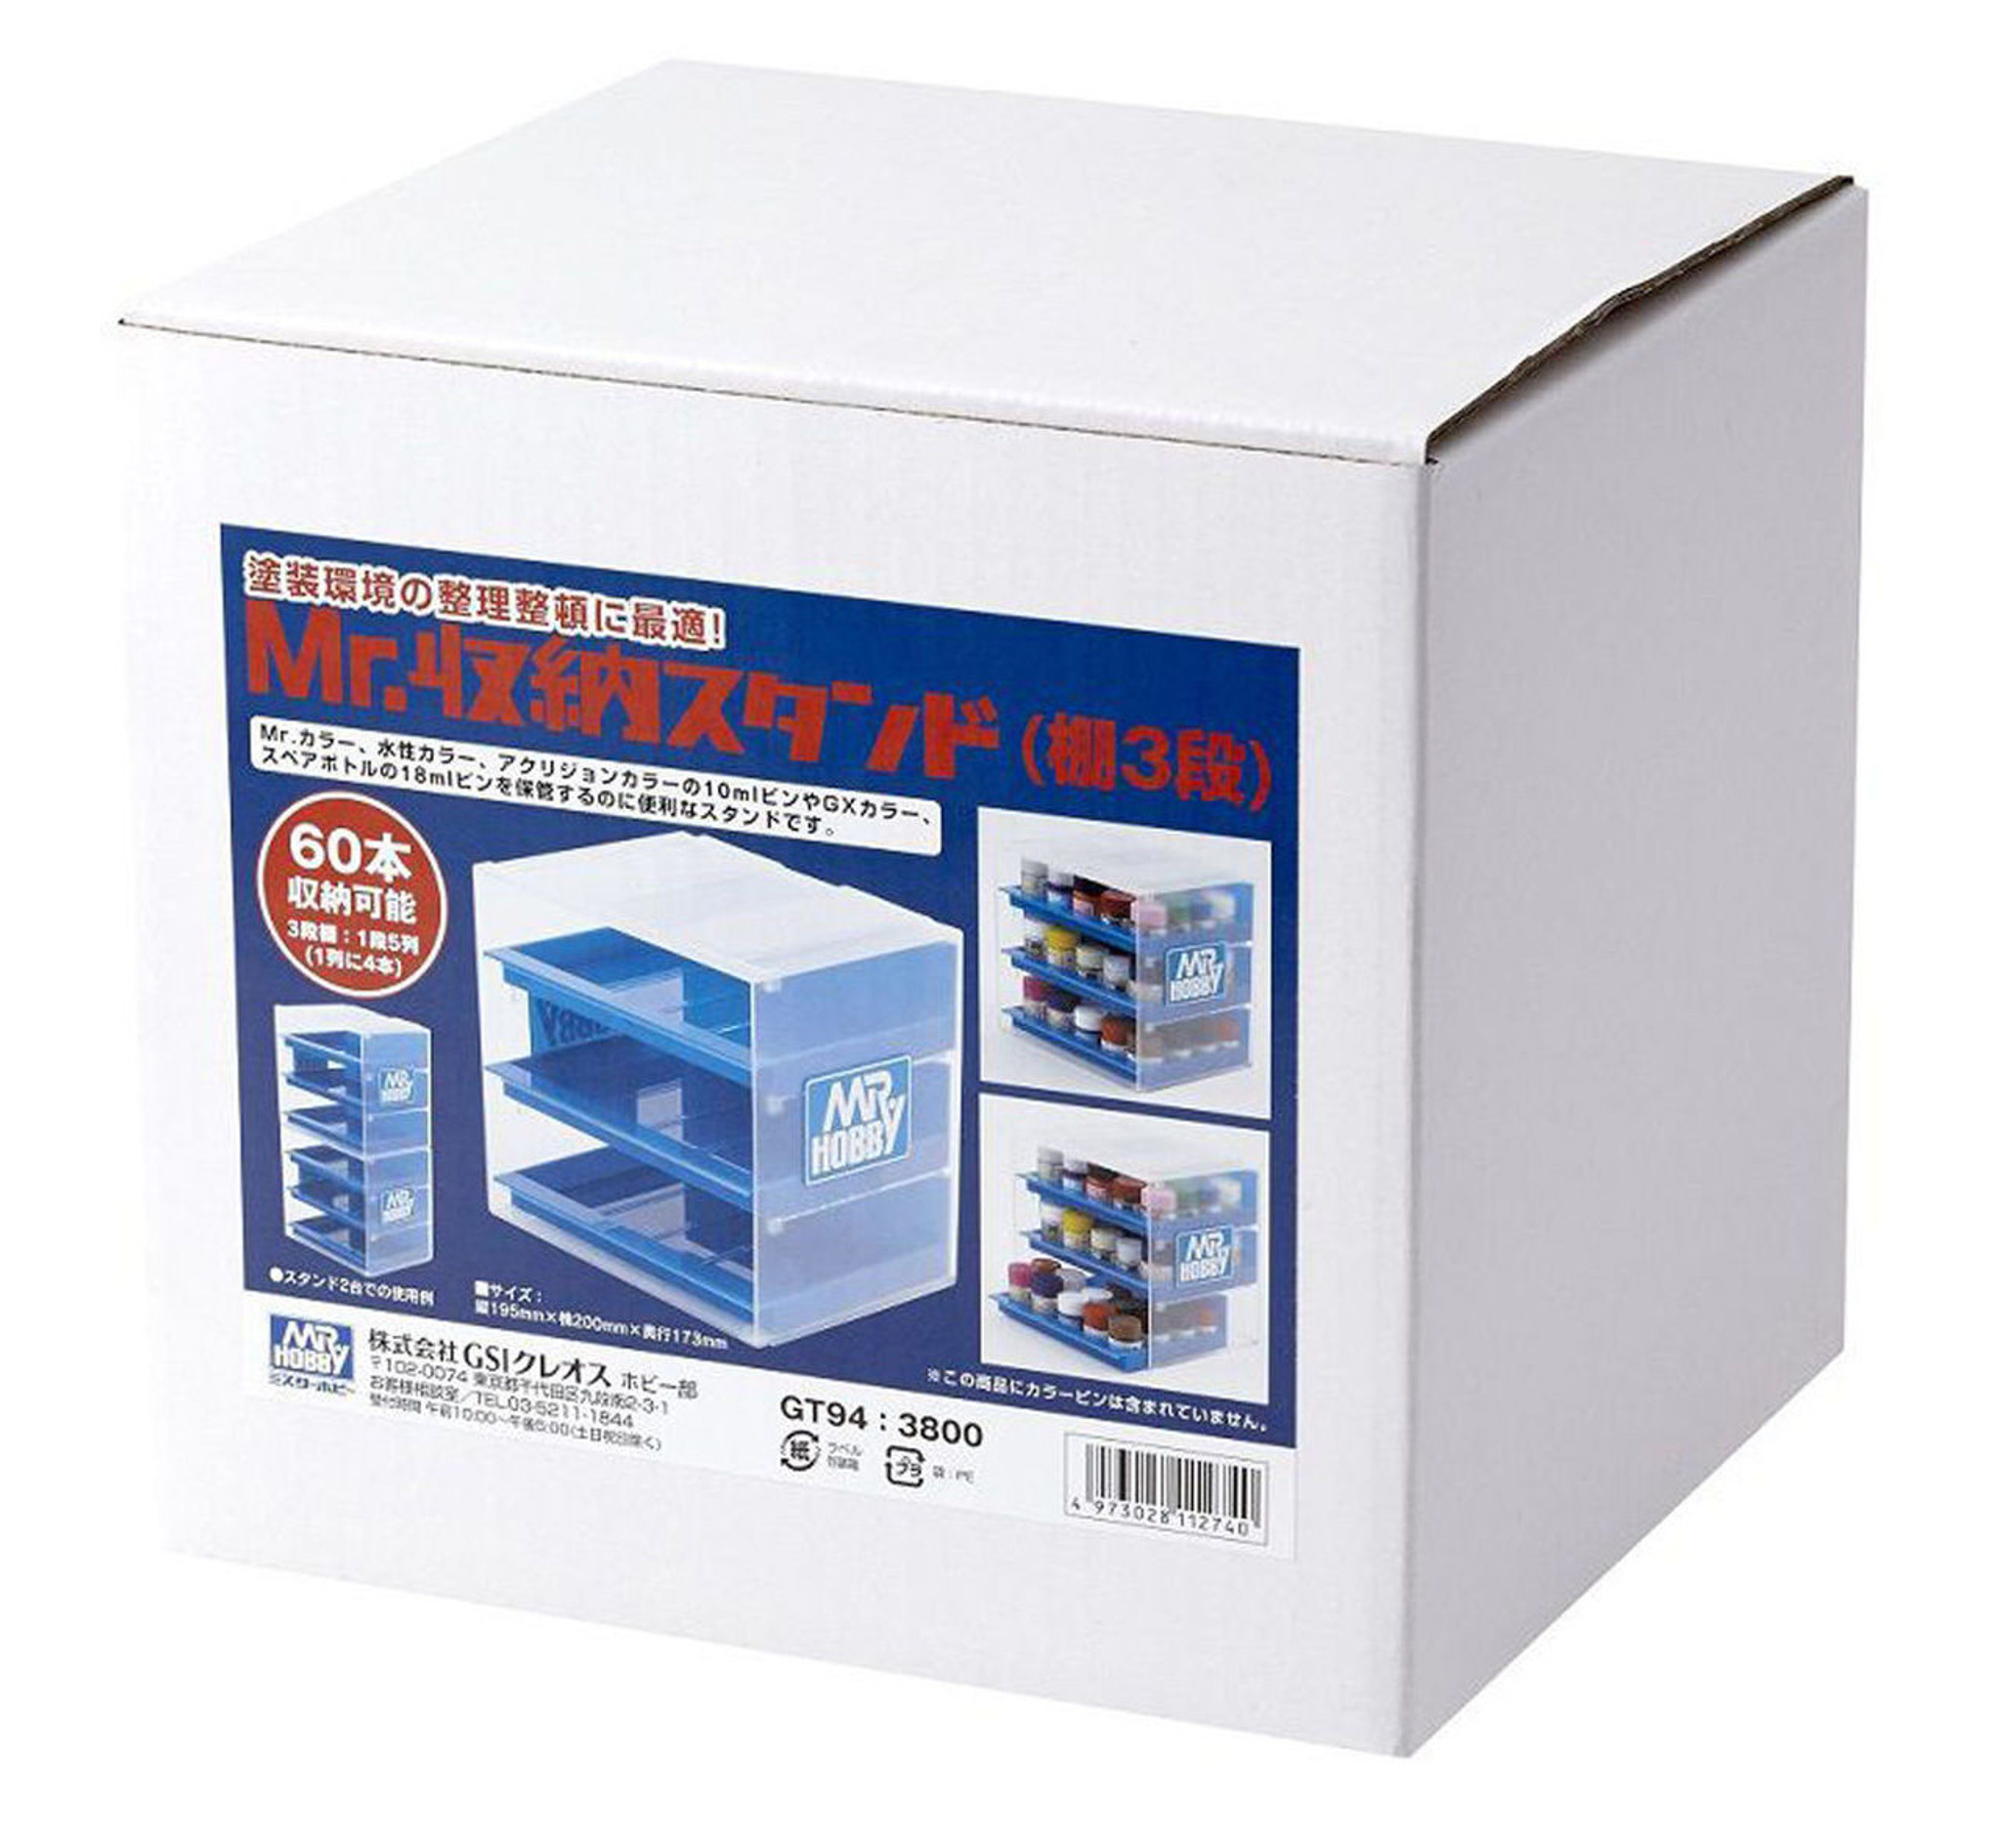 Gsi Creos Mr Hobby Gt94 Storage Stand